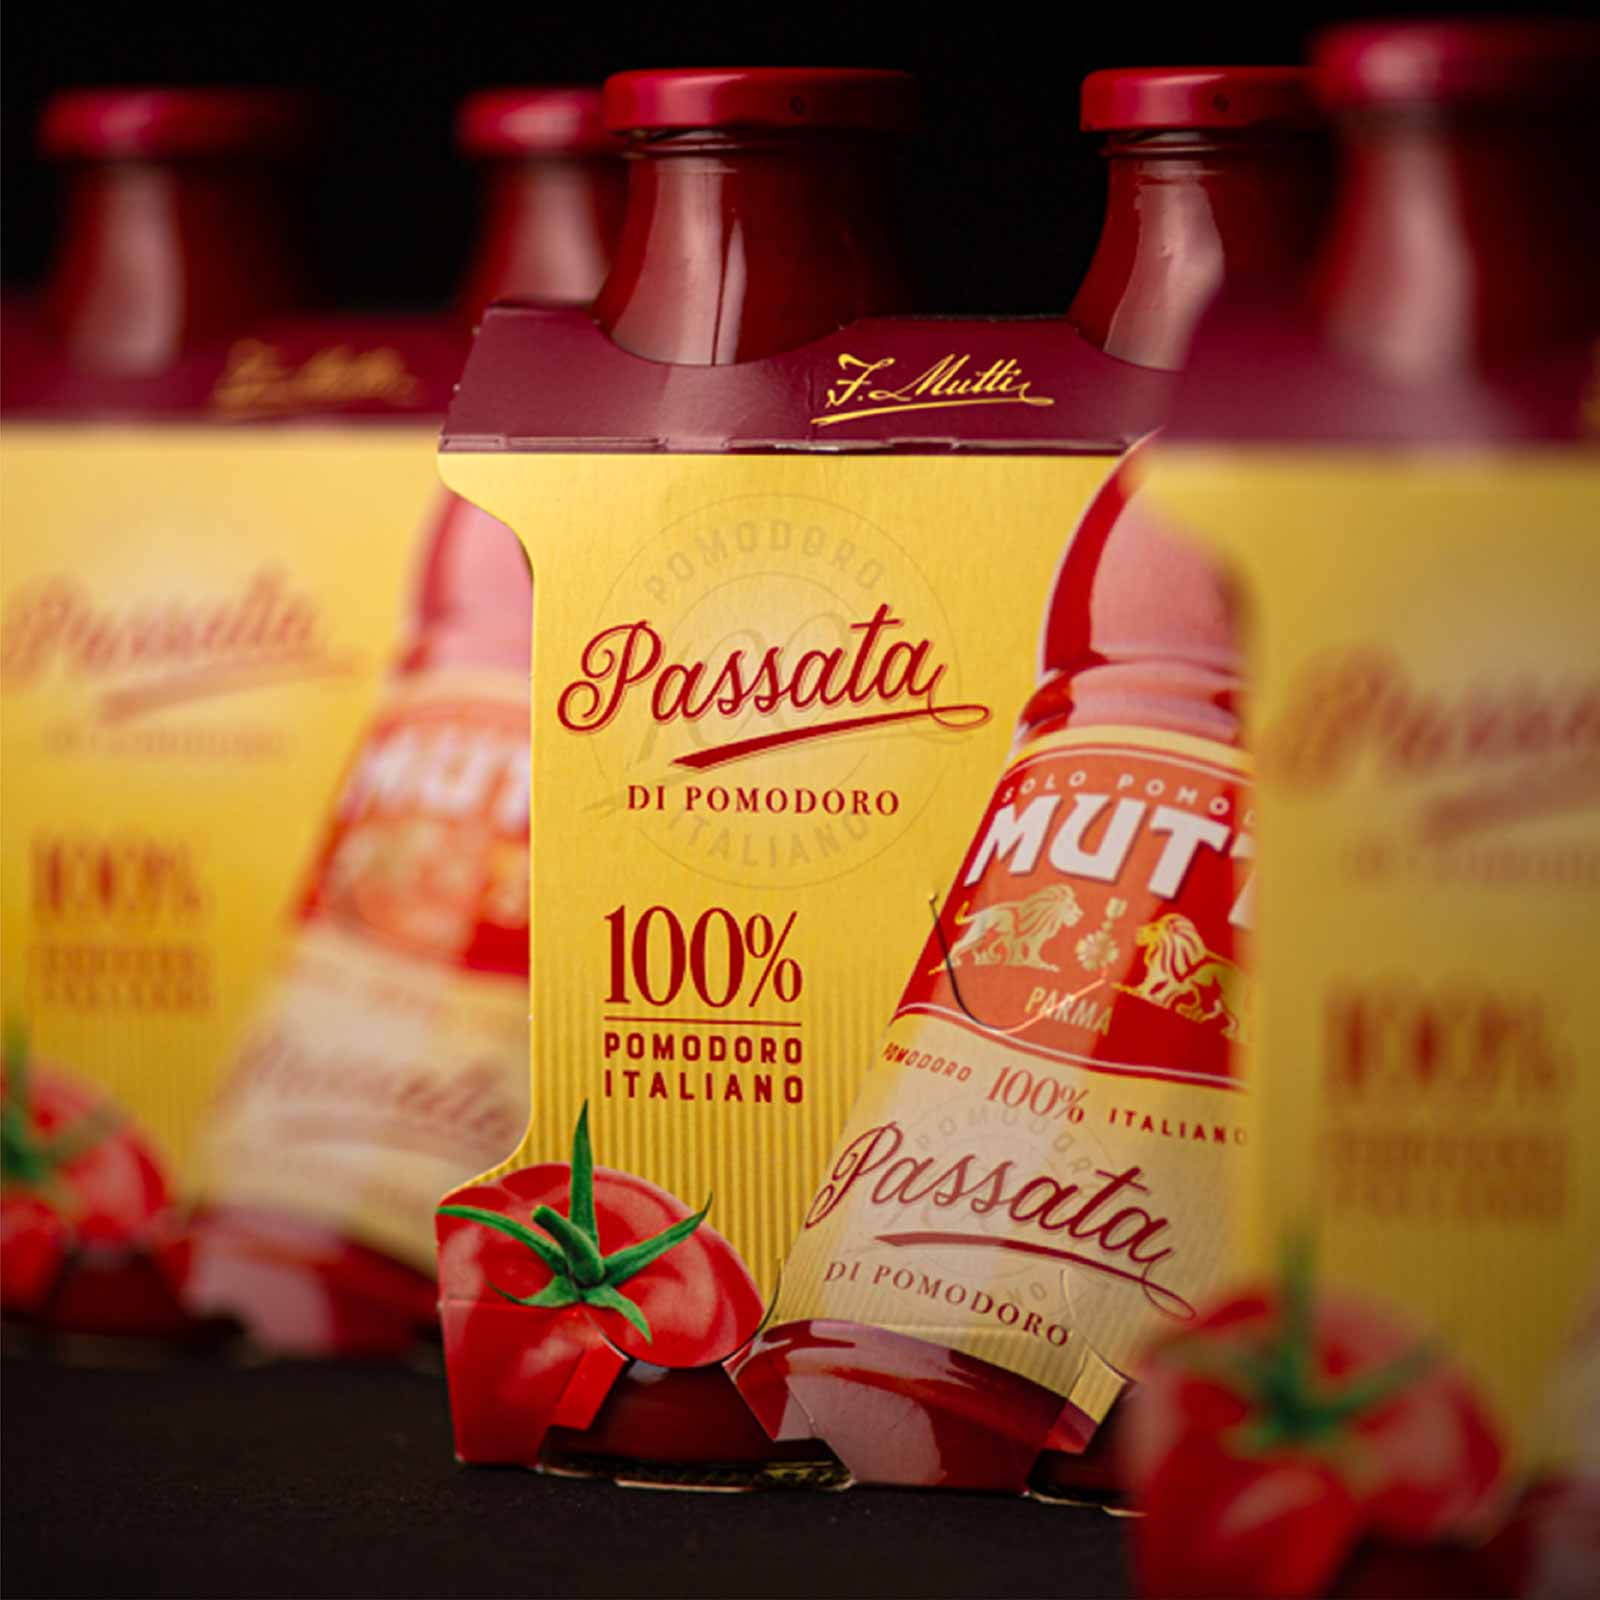 Dispenser - Packaging - Passata Mutti